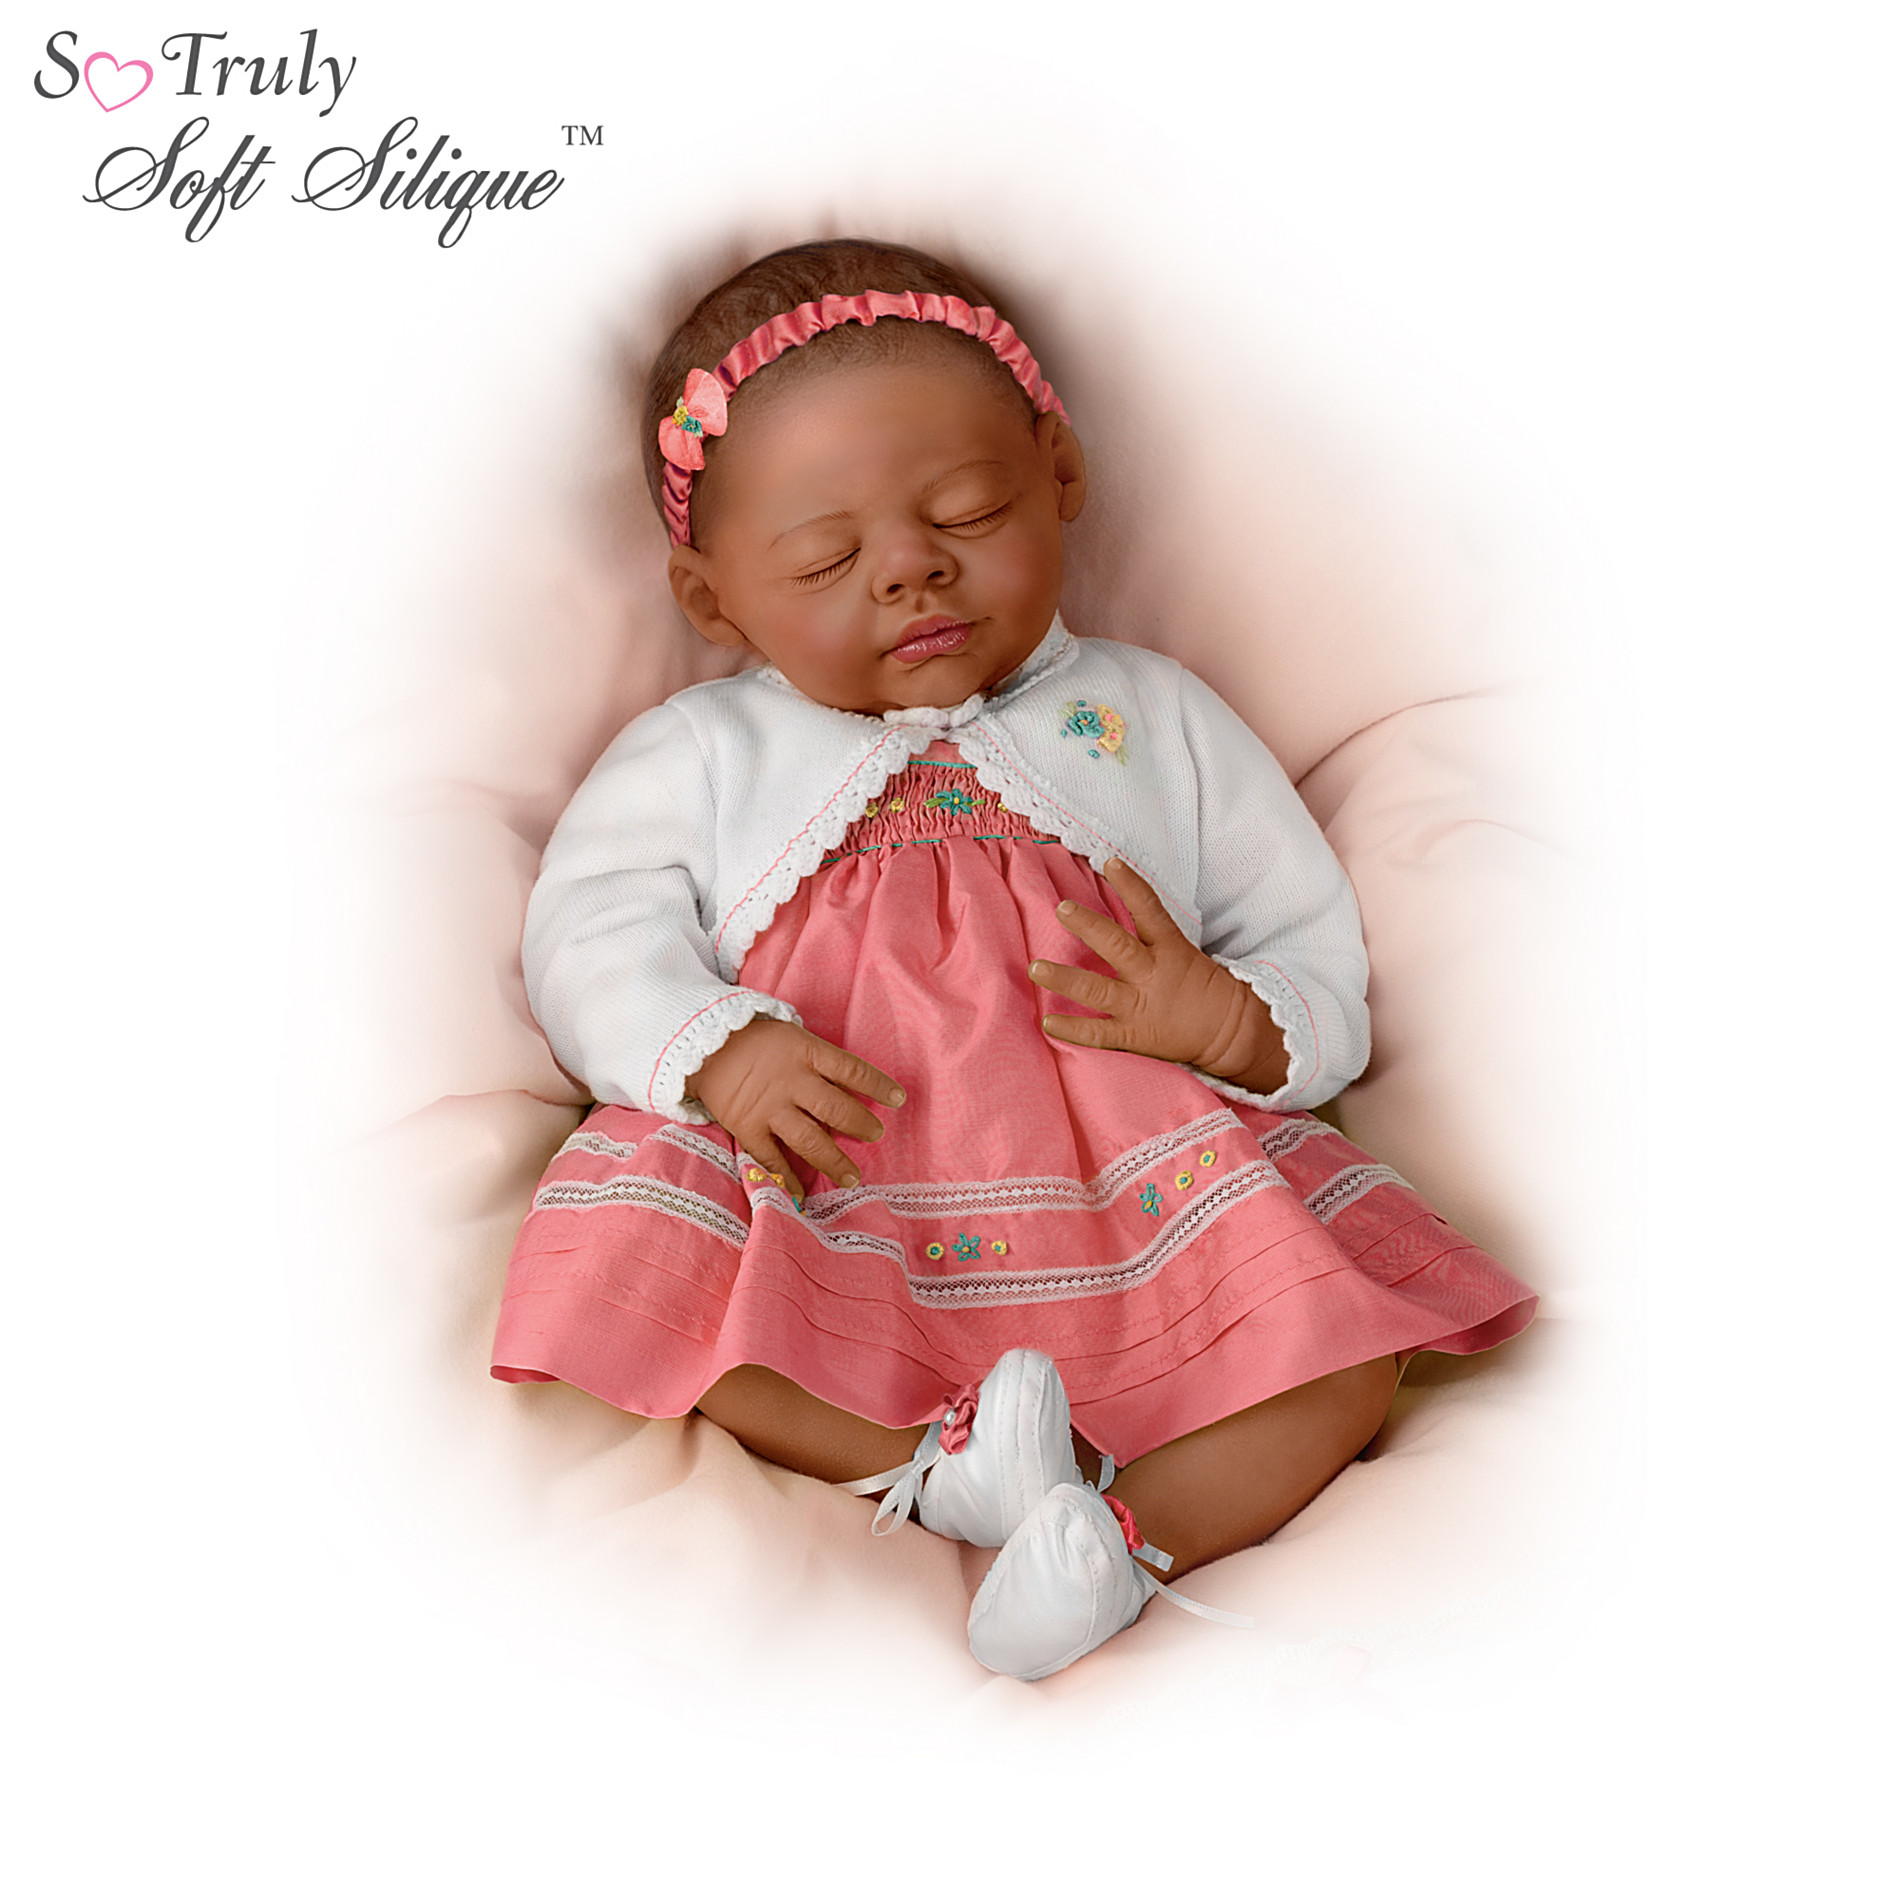 The Ashton-Drake Galleries Realistic African-American Baby Doll: Beautiful Beyonce at Sears.com